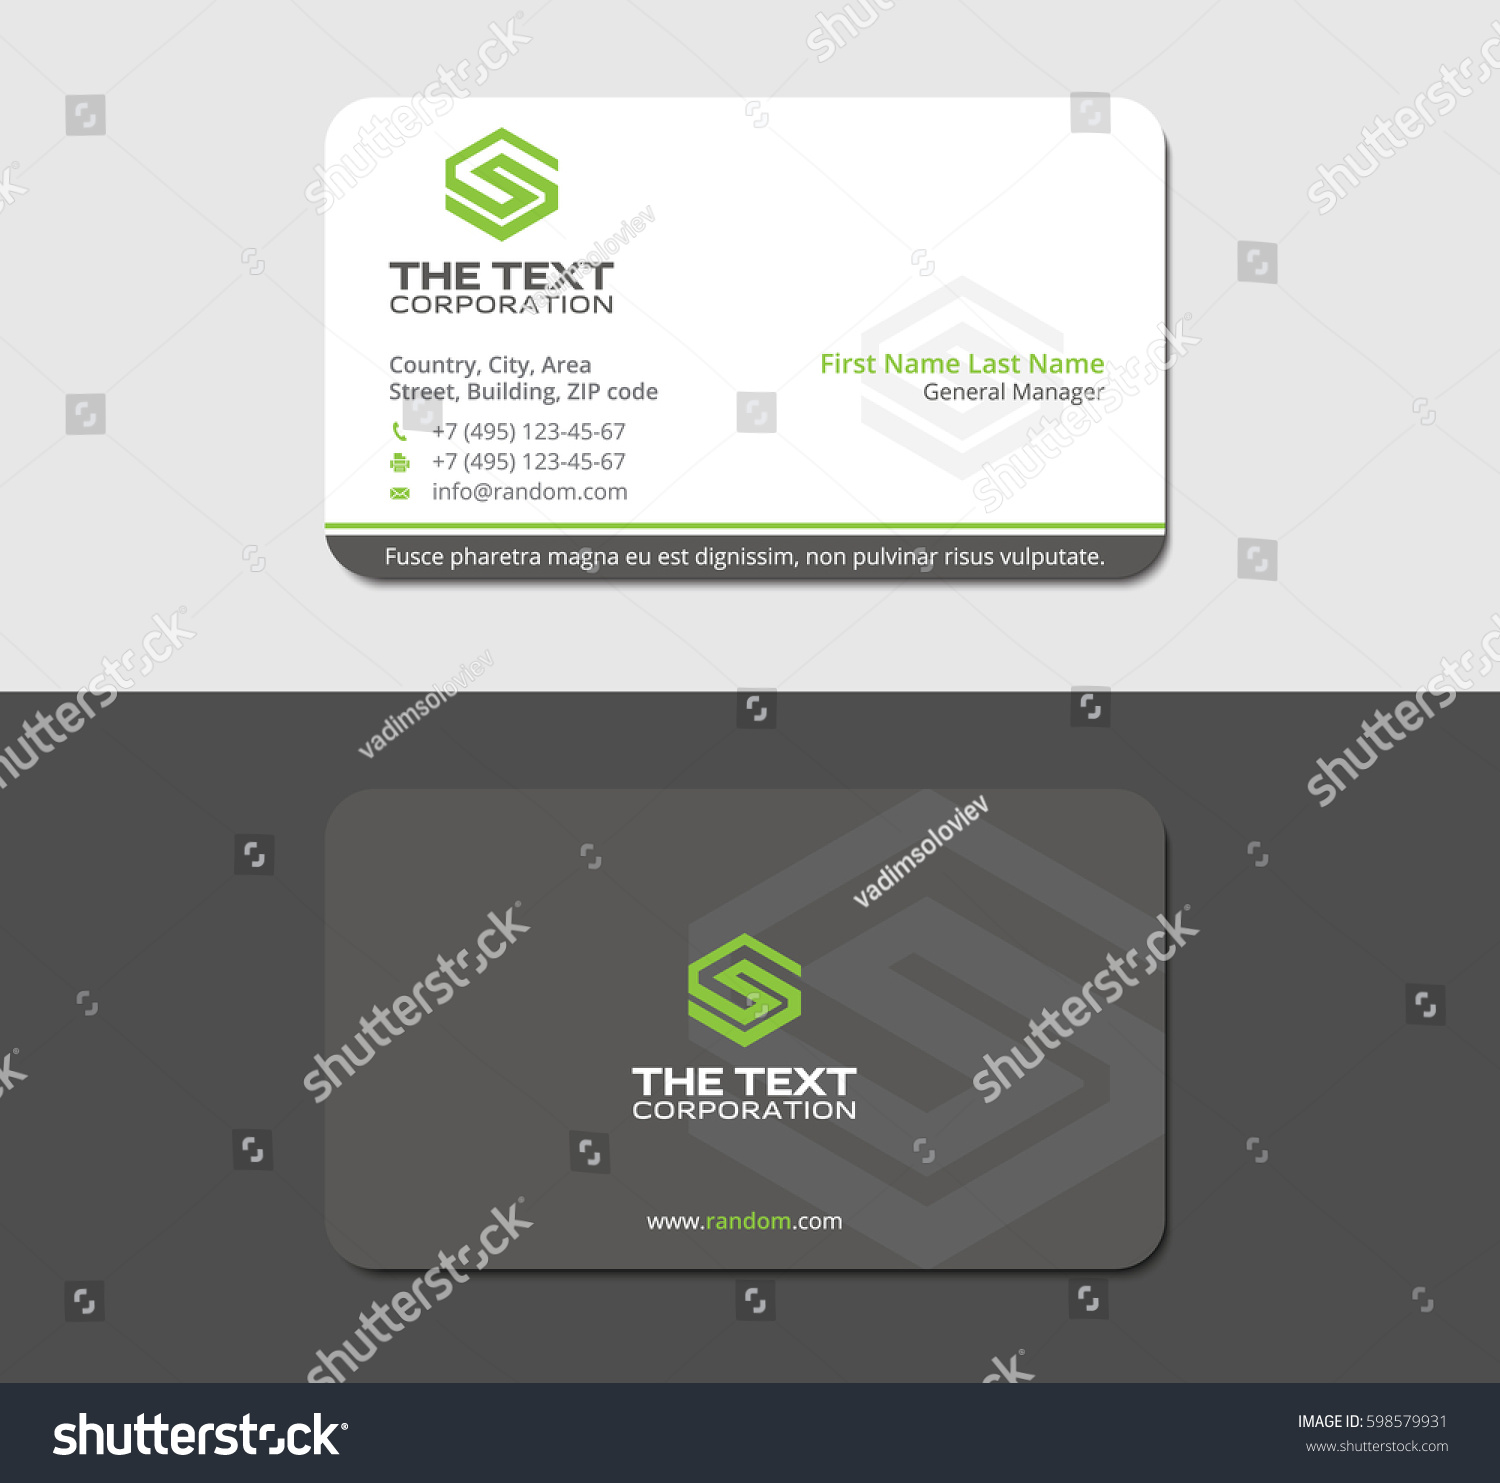 Gray commercial business card green letter stock vector hd royalty gray commercial business card with green letter s thecheapjerseys Gallery